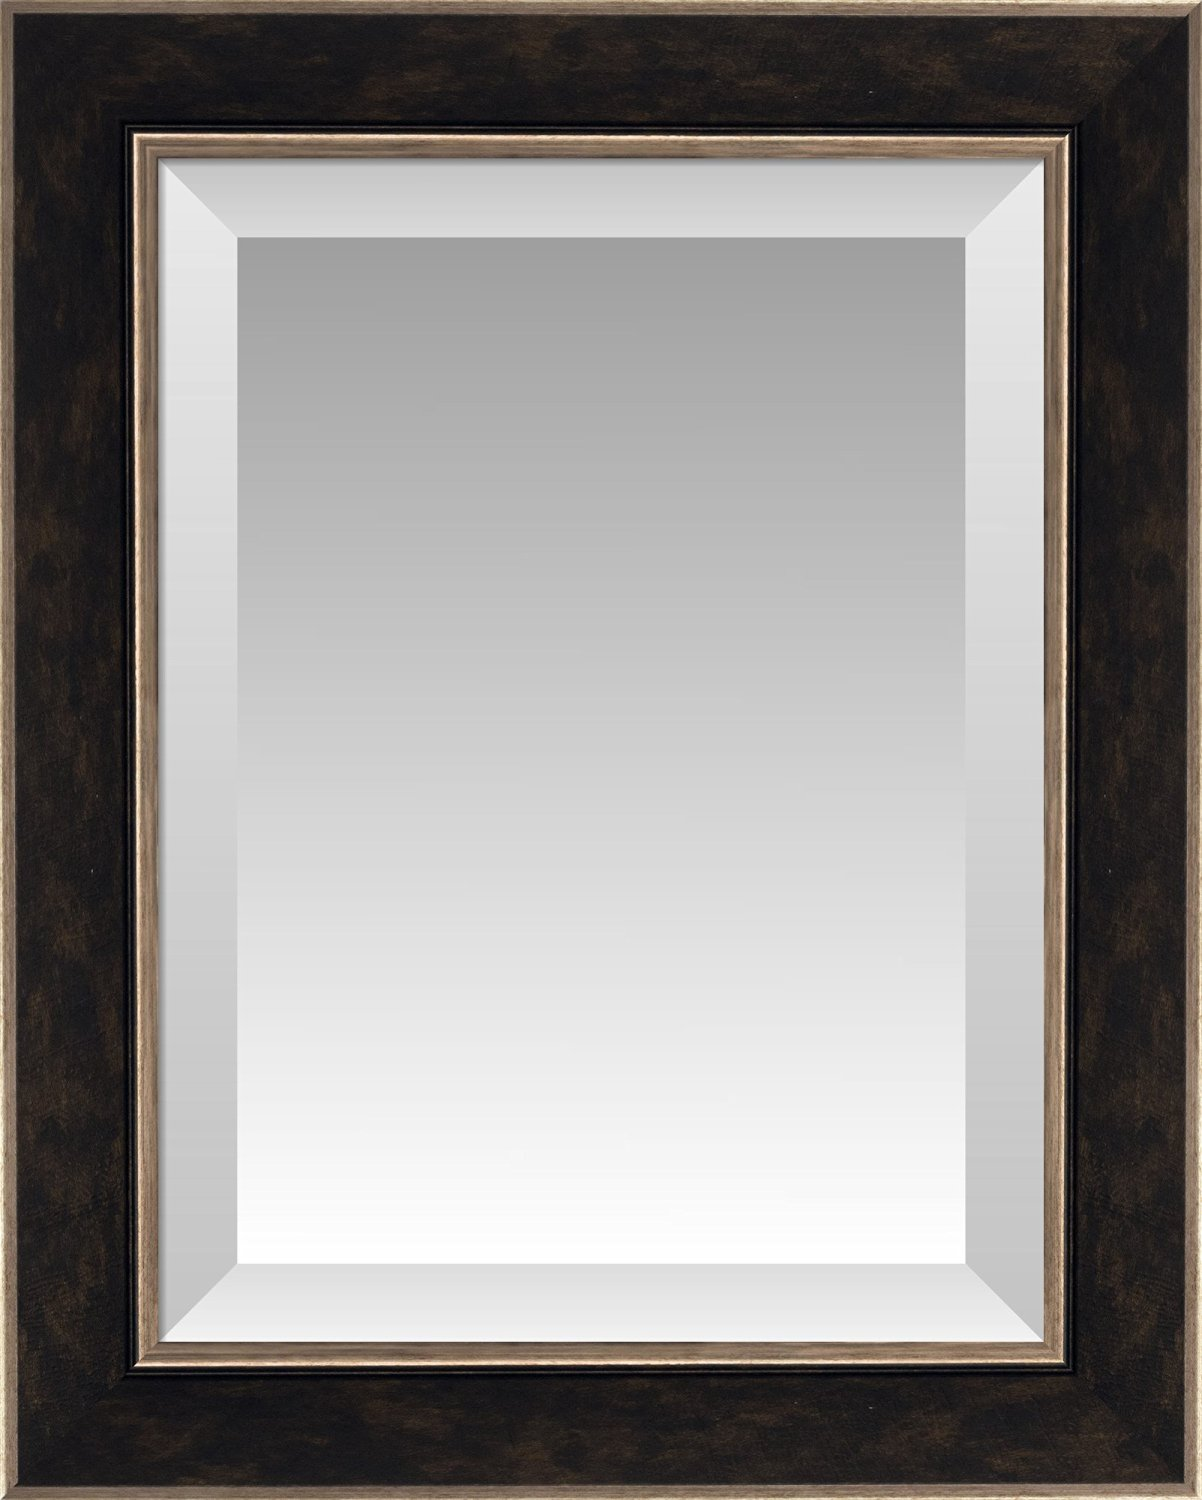 Buy Bronze Washed Espresso Brown With Bronze Edges Beveled Wall